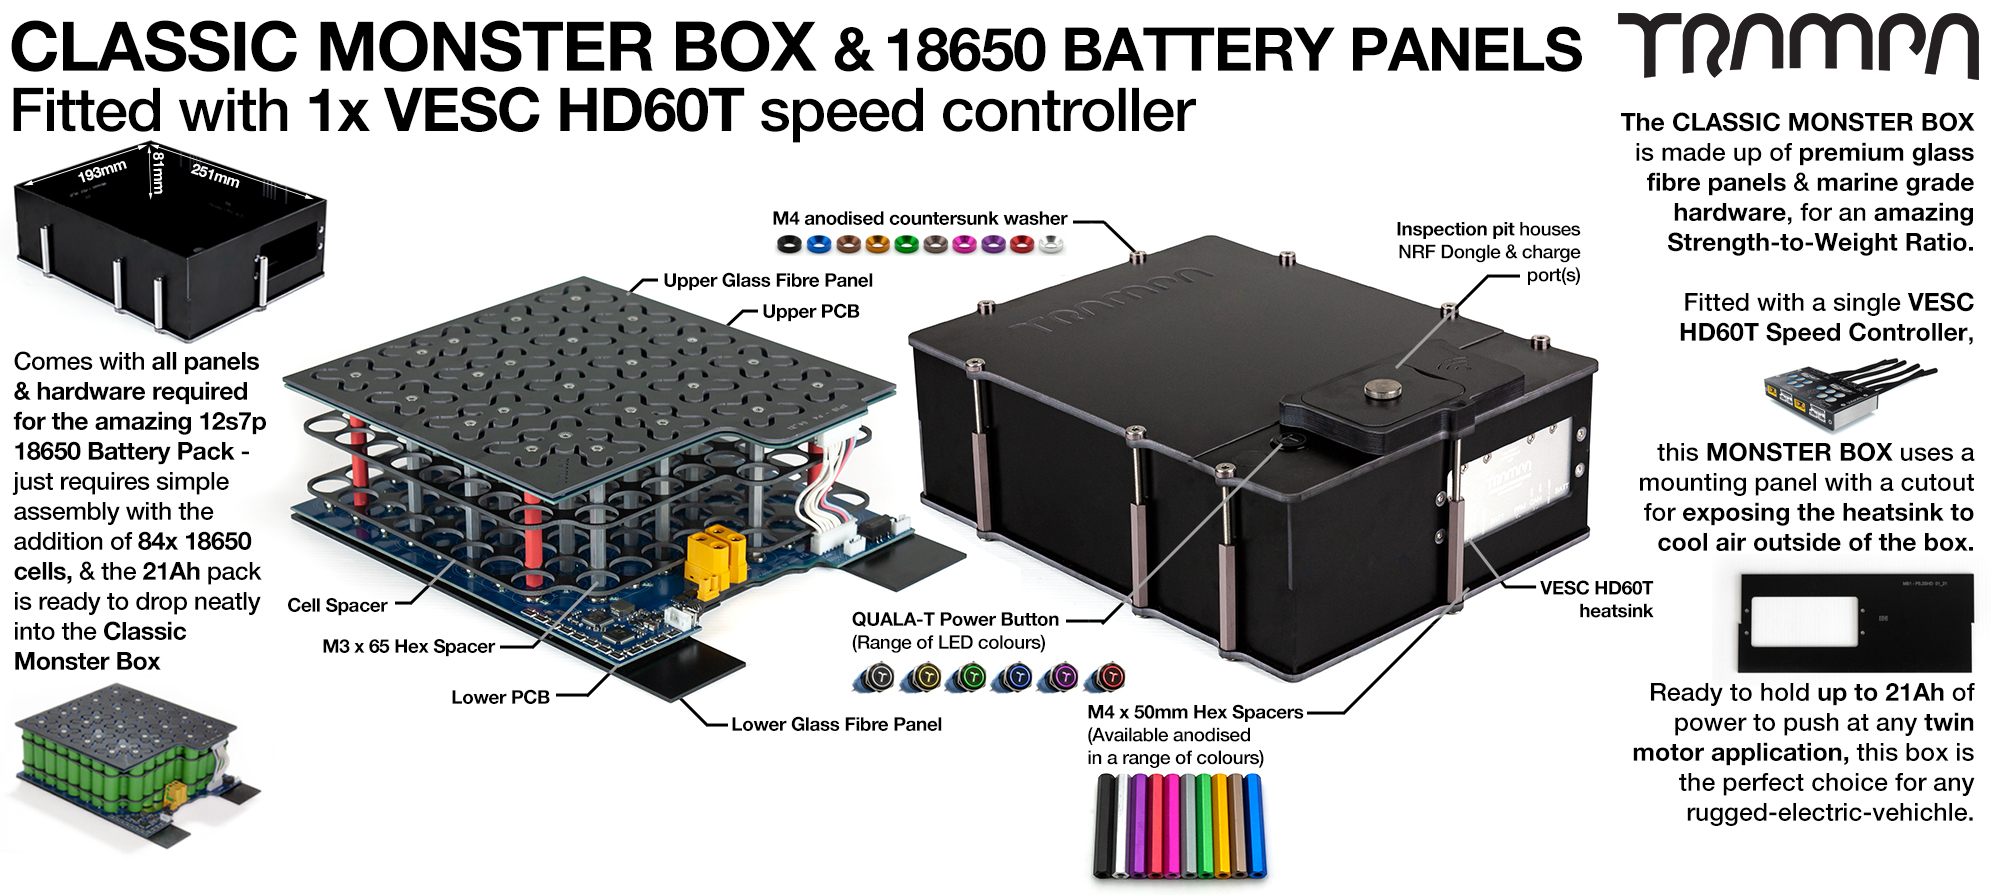 Classic MONSTER Box MkIV - with 18650 PCB Pack & 1x VESC HD-60Twin - NO CELLS PCB based Battery Pack with Integrated Battery Management System (BMS) - NO Cells